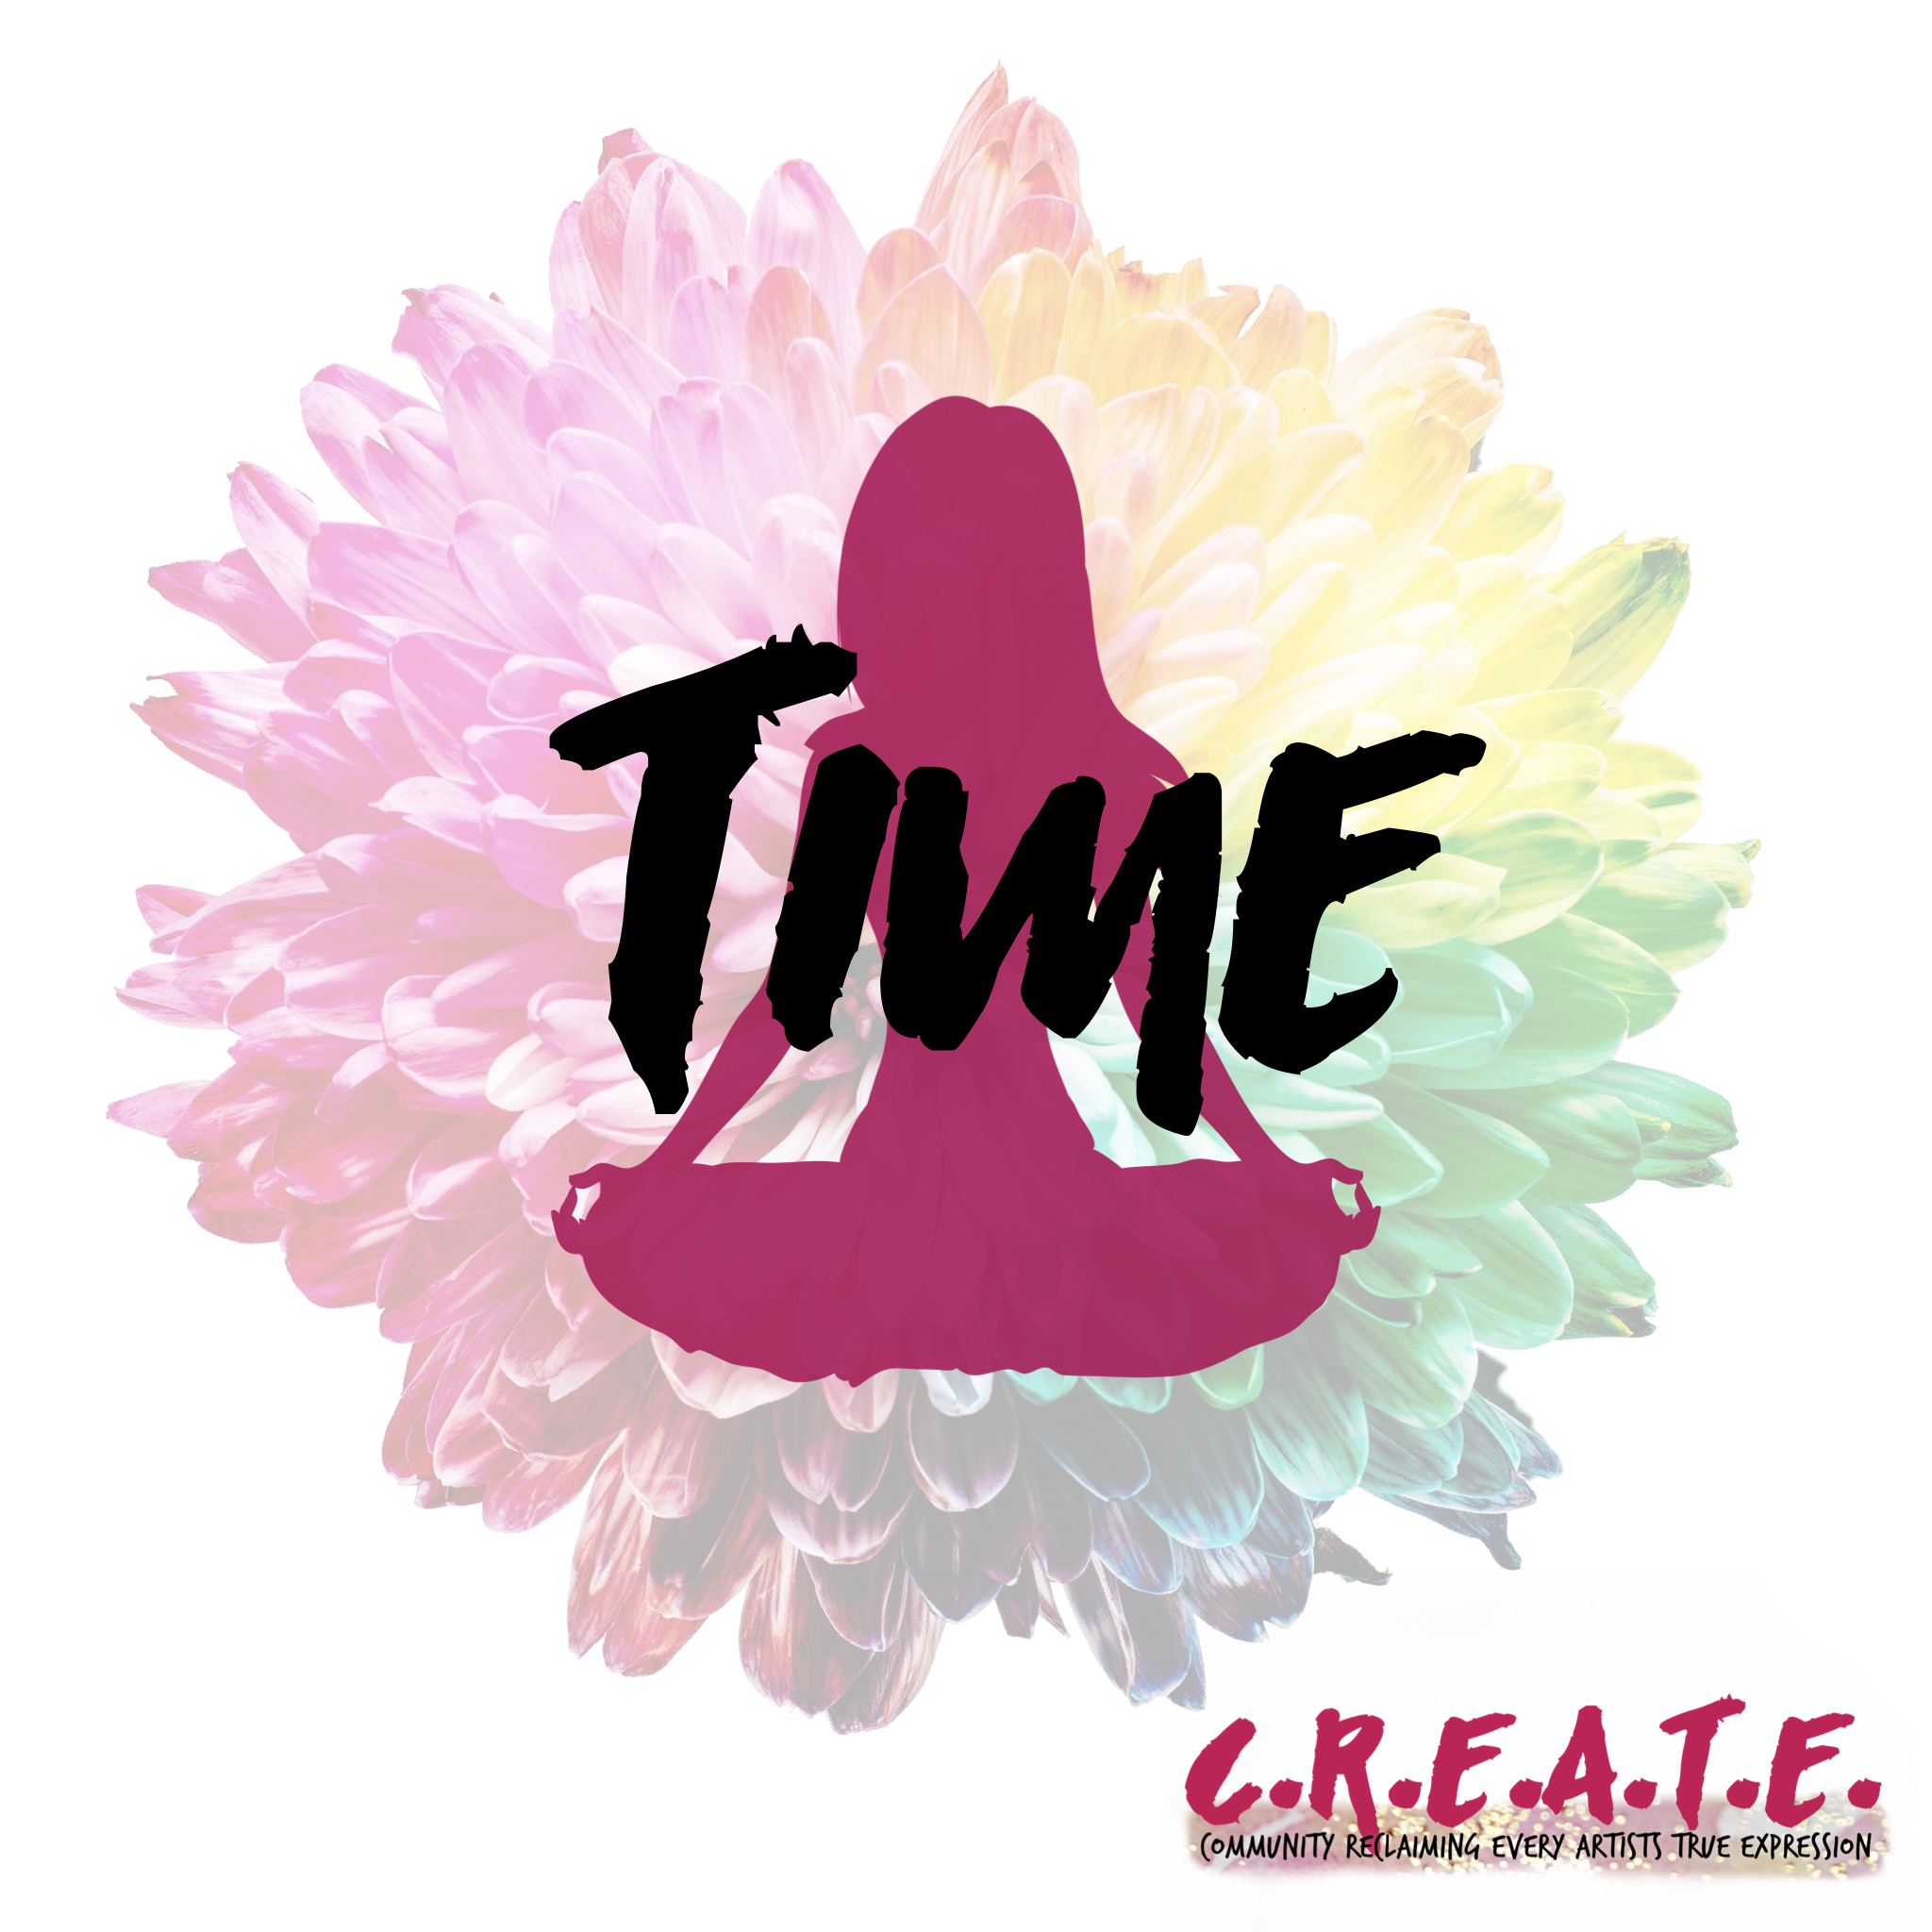 Time - $1.99 - Click Image To Purchase!